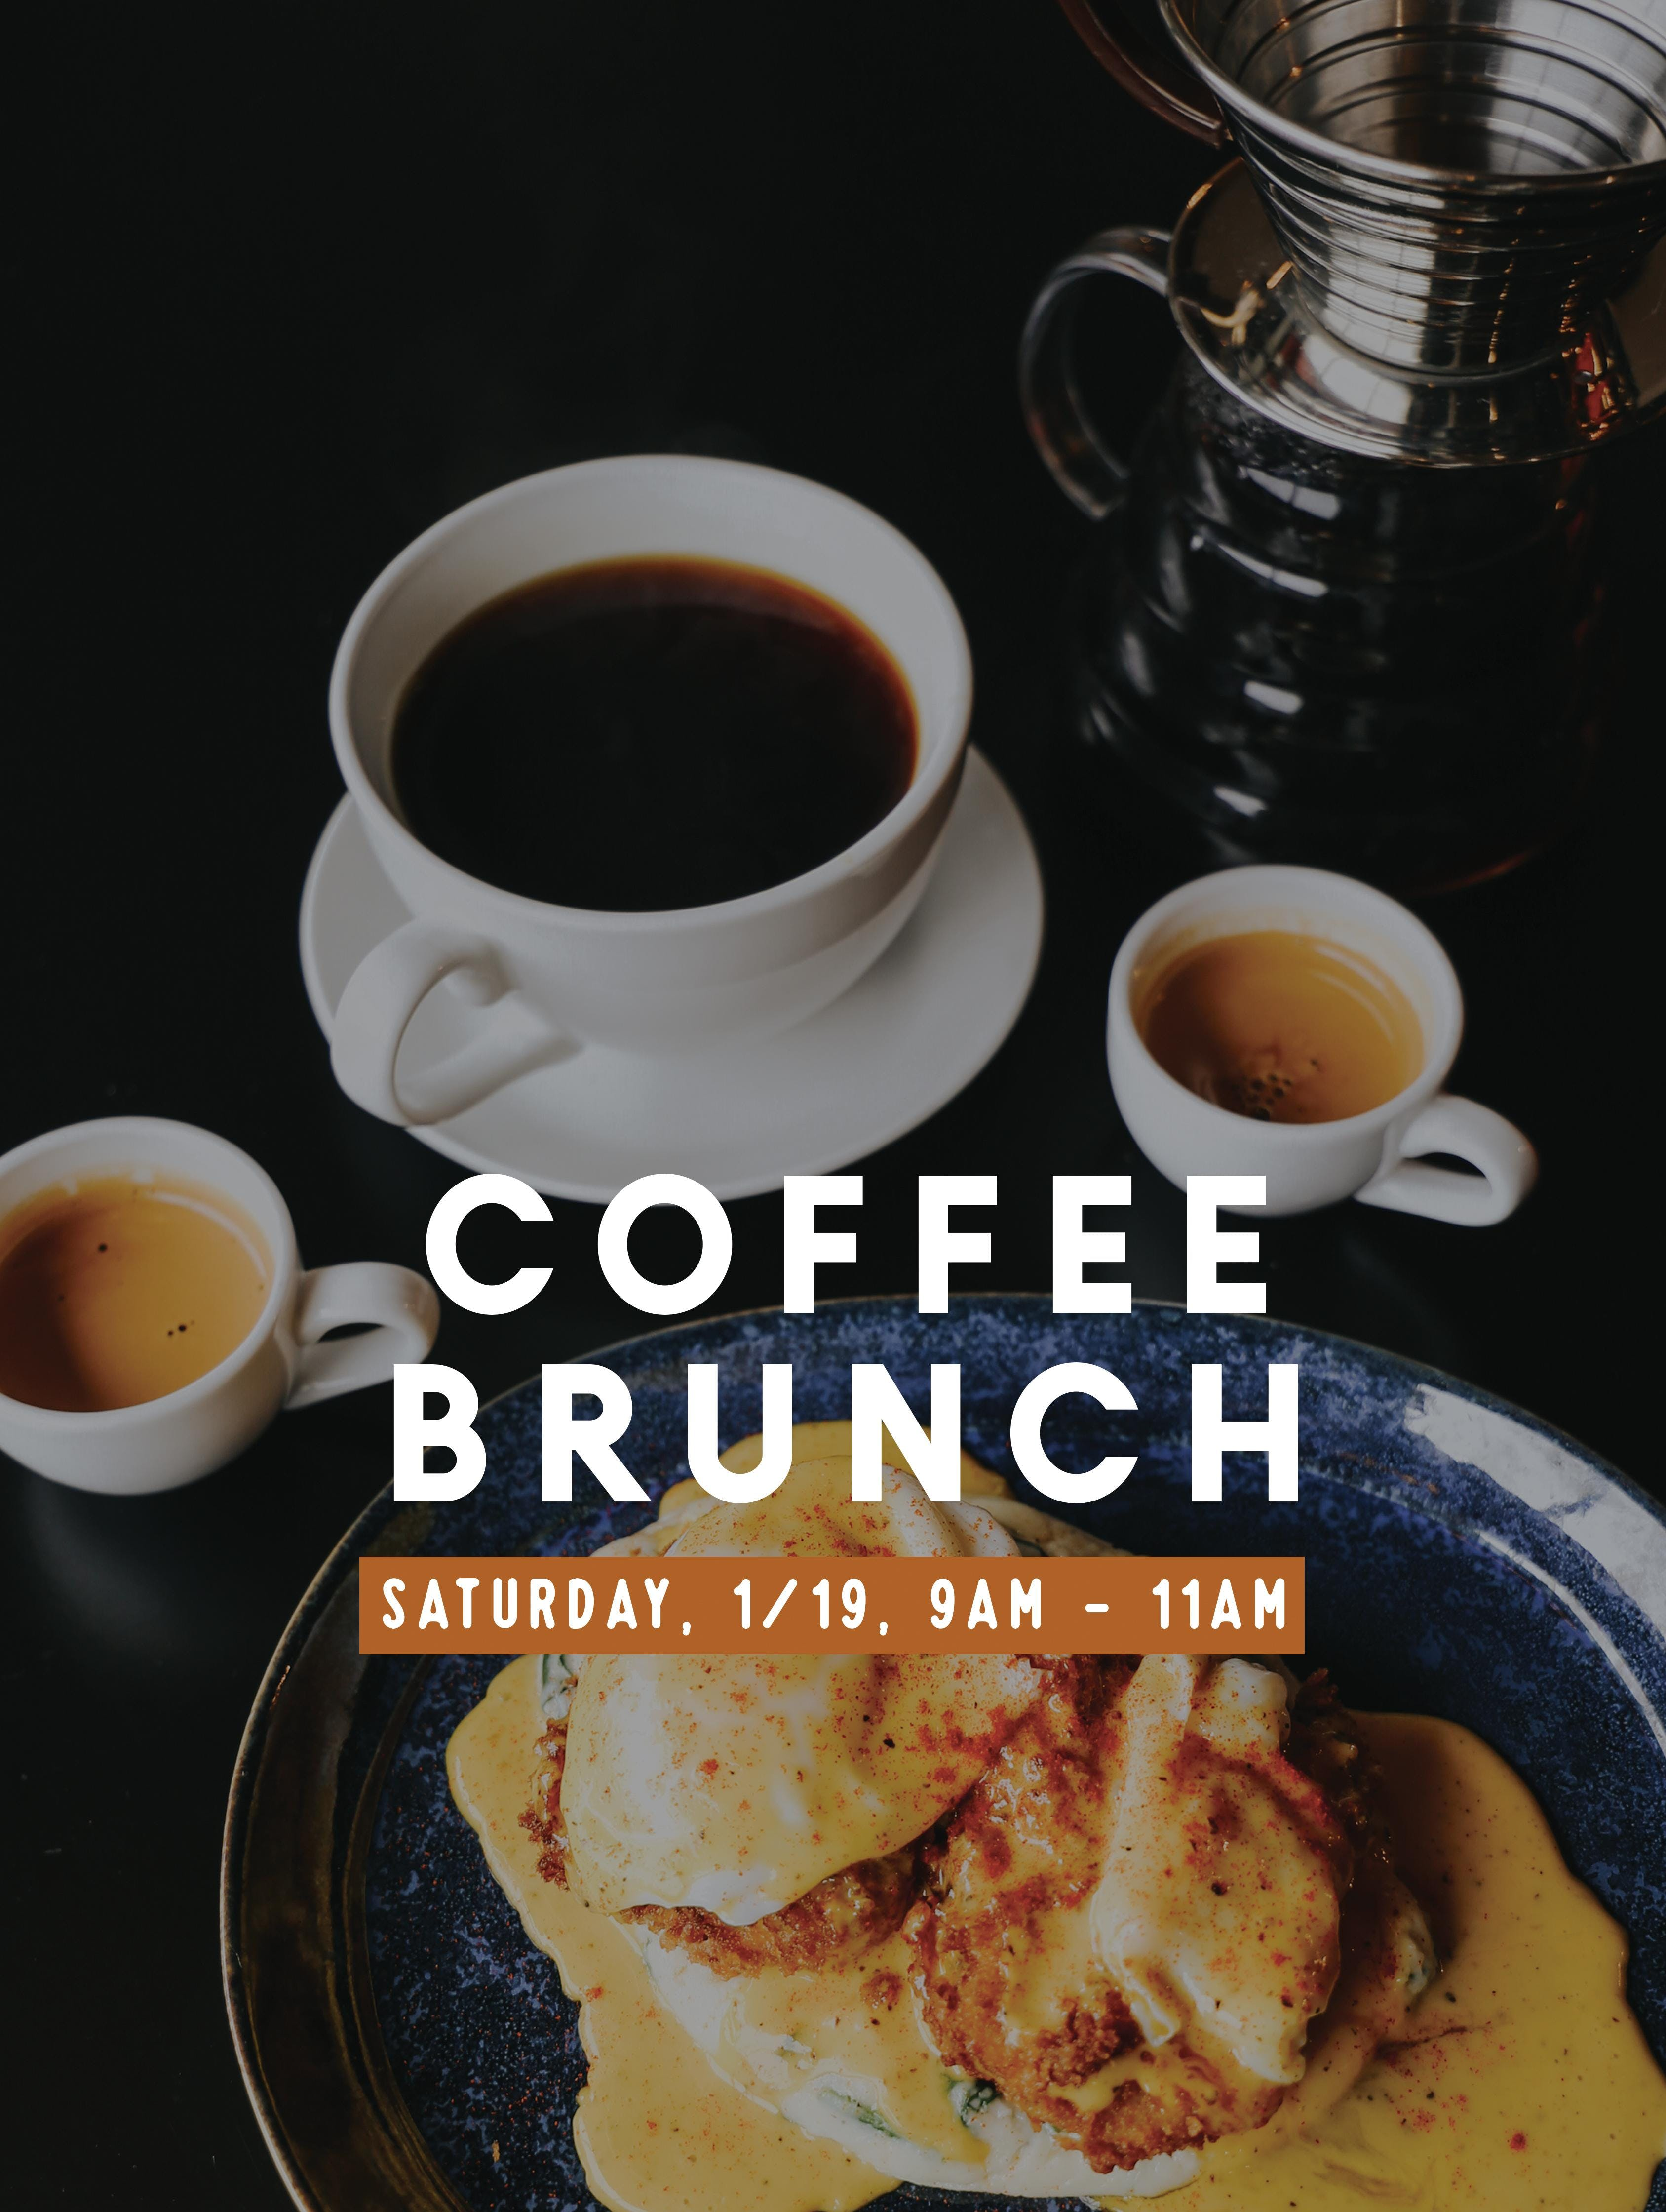 McLain's Market and Repetition Coffee Brunch